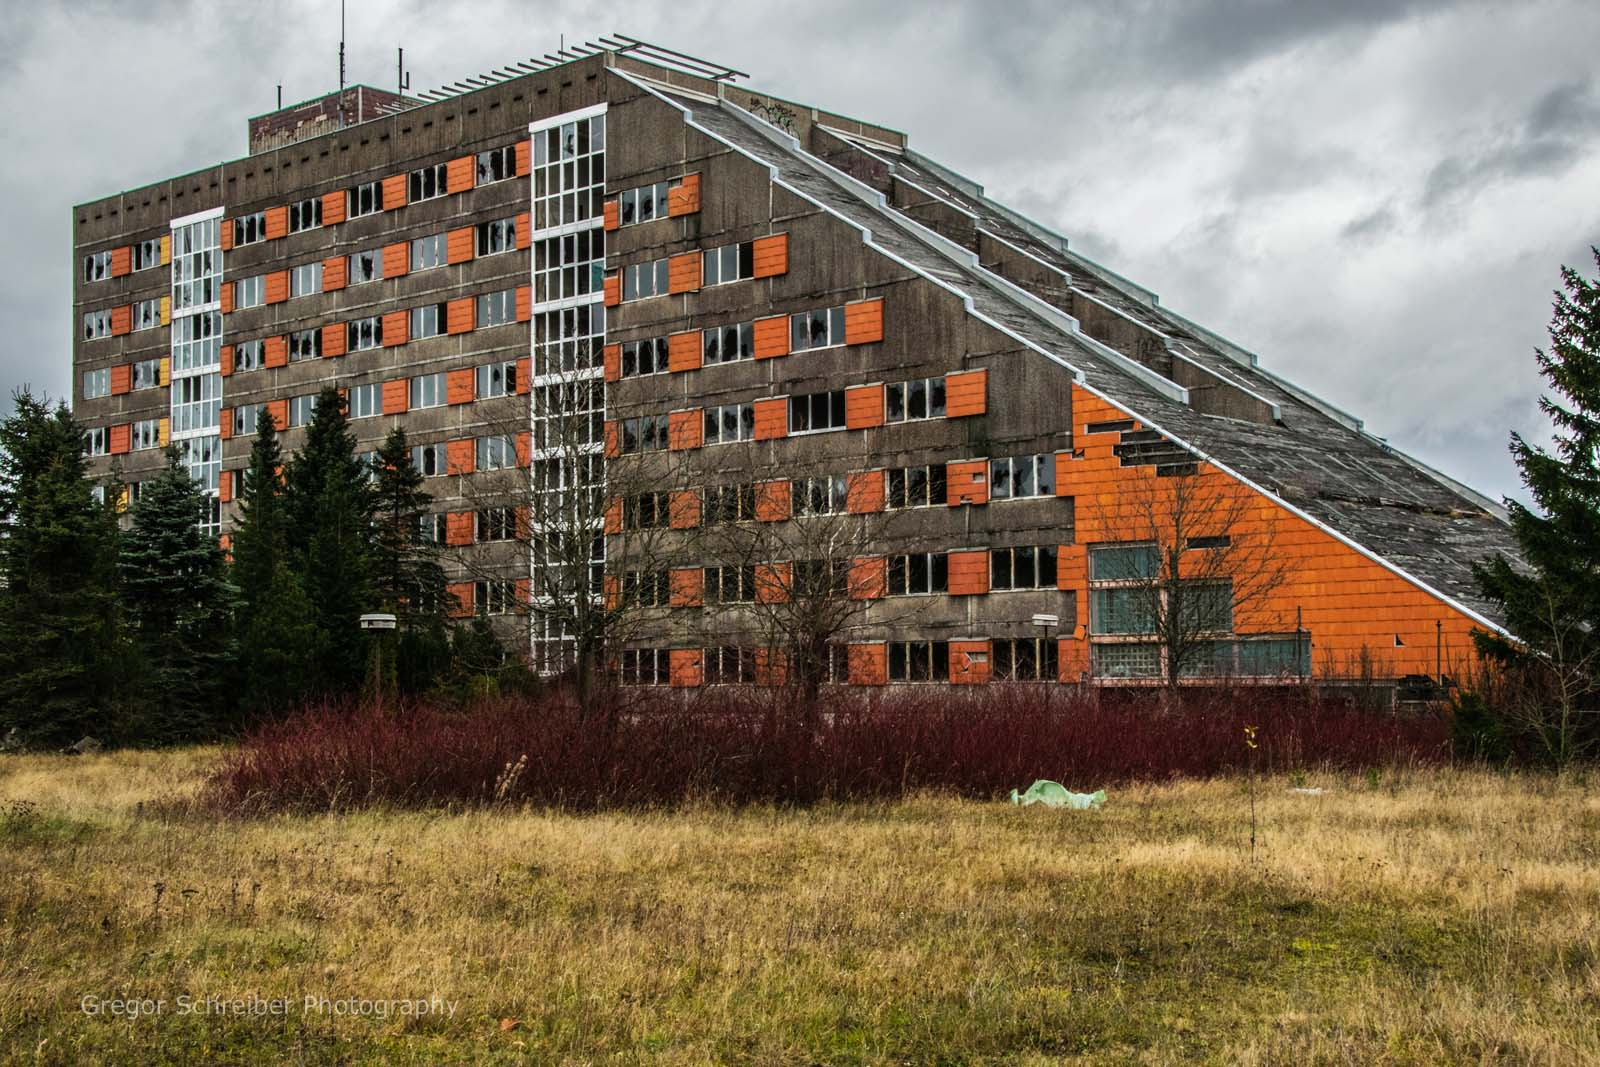 Lost Places - NVA Erholungsheim